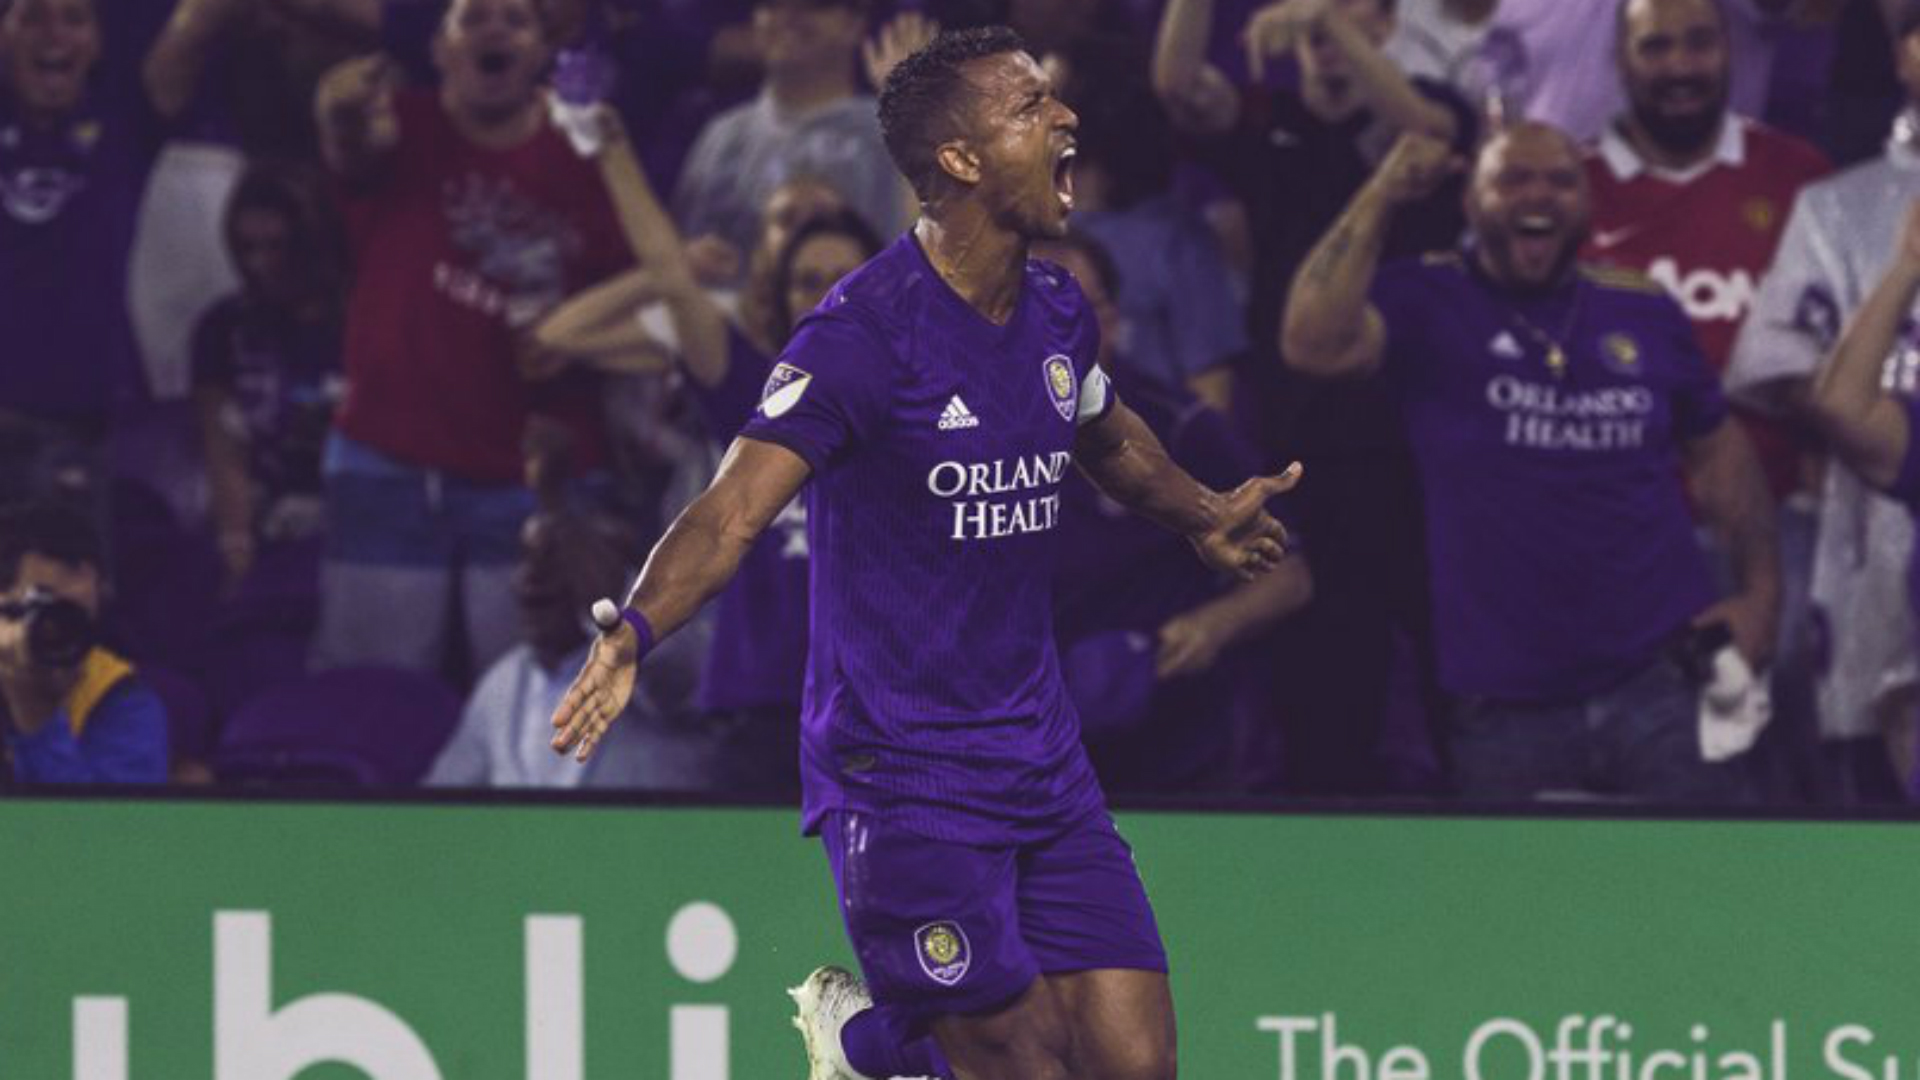 MLS Review: Nani scores twice in seven-goal thriller, Rooney sent off